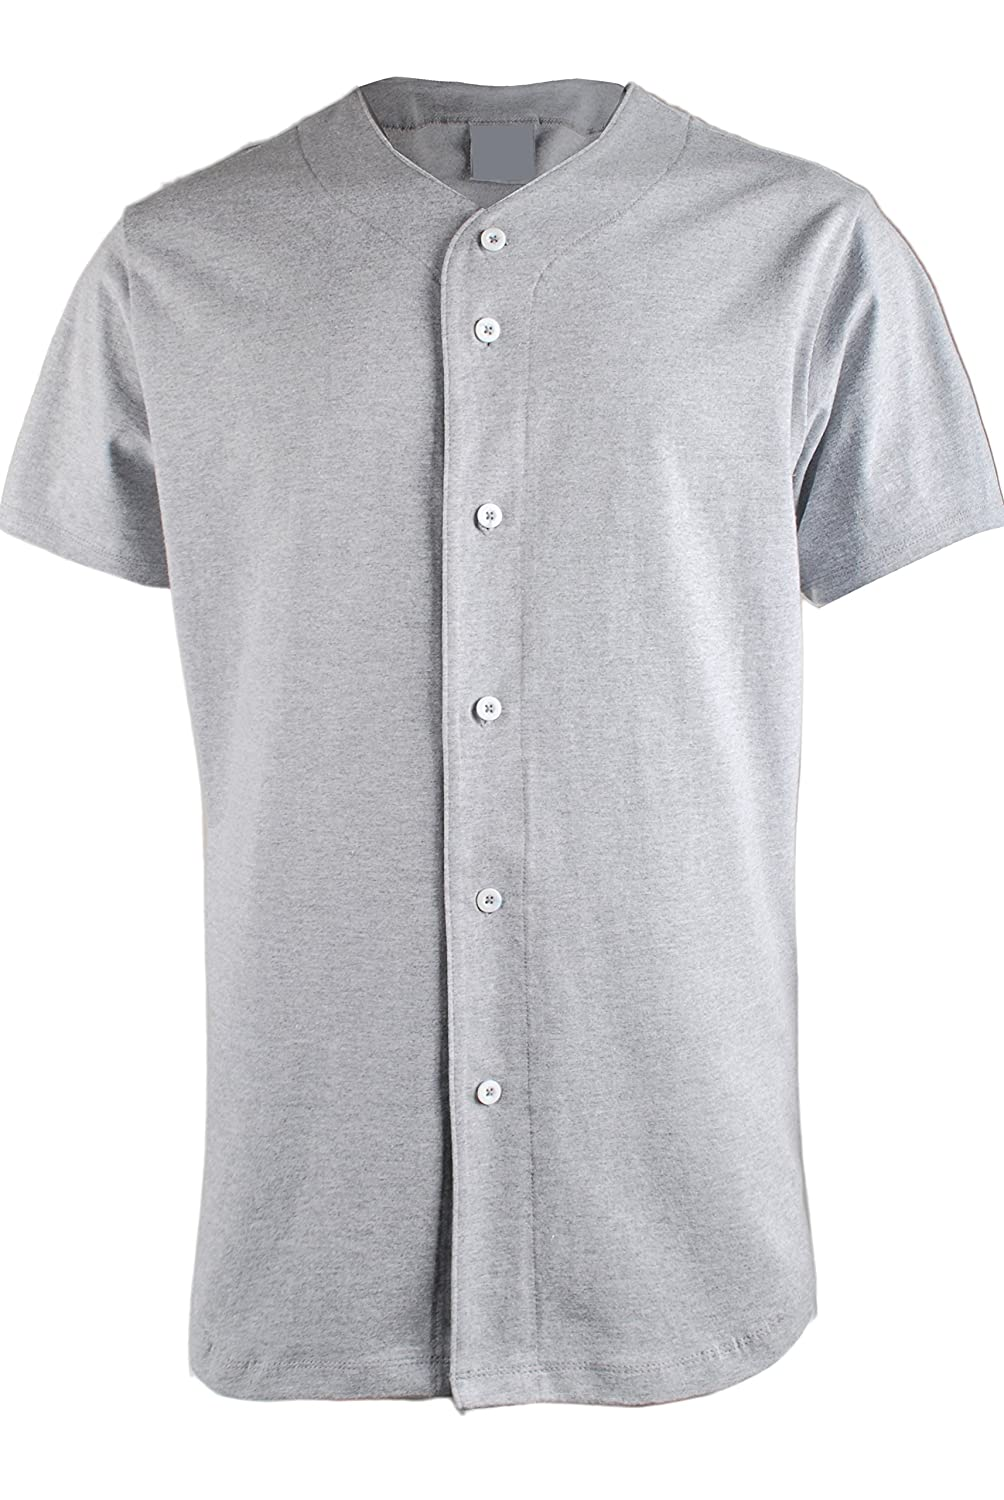 TL Men's Baseball Hipster Button Down Athletic Short Sleeve Jersey Tops TL-JERSEY